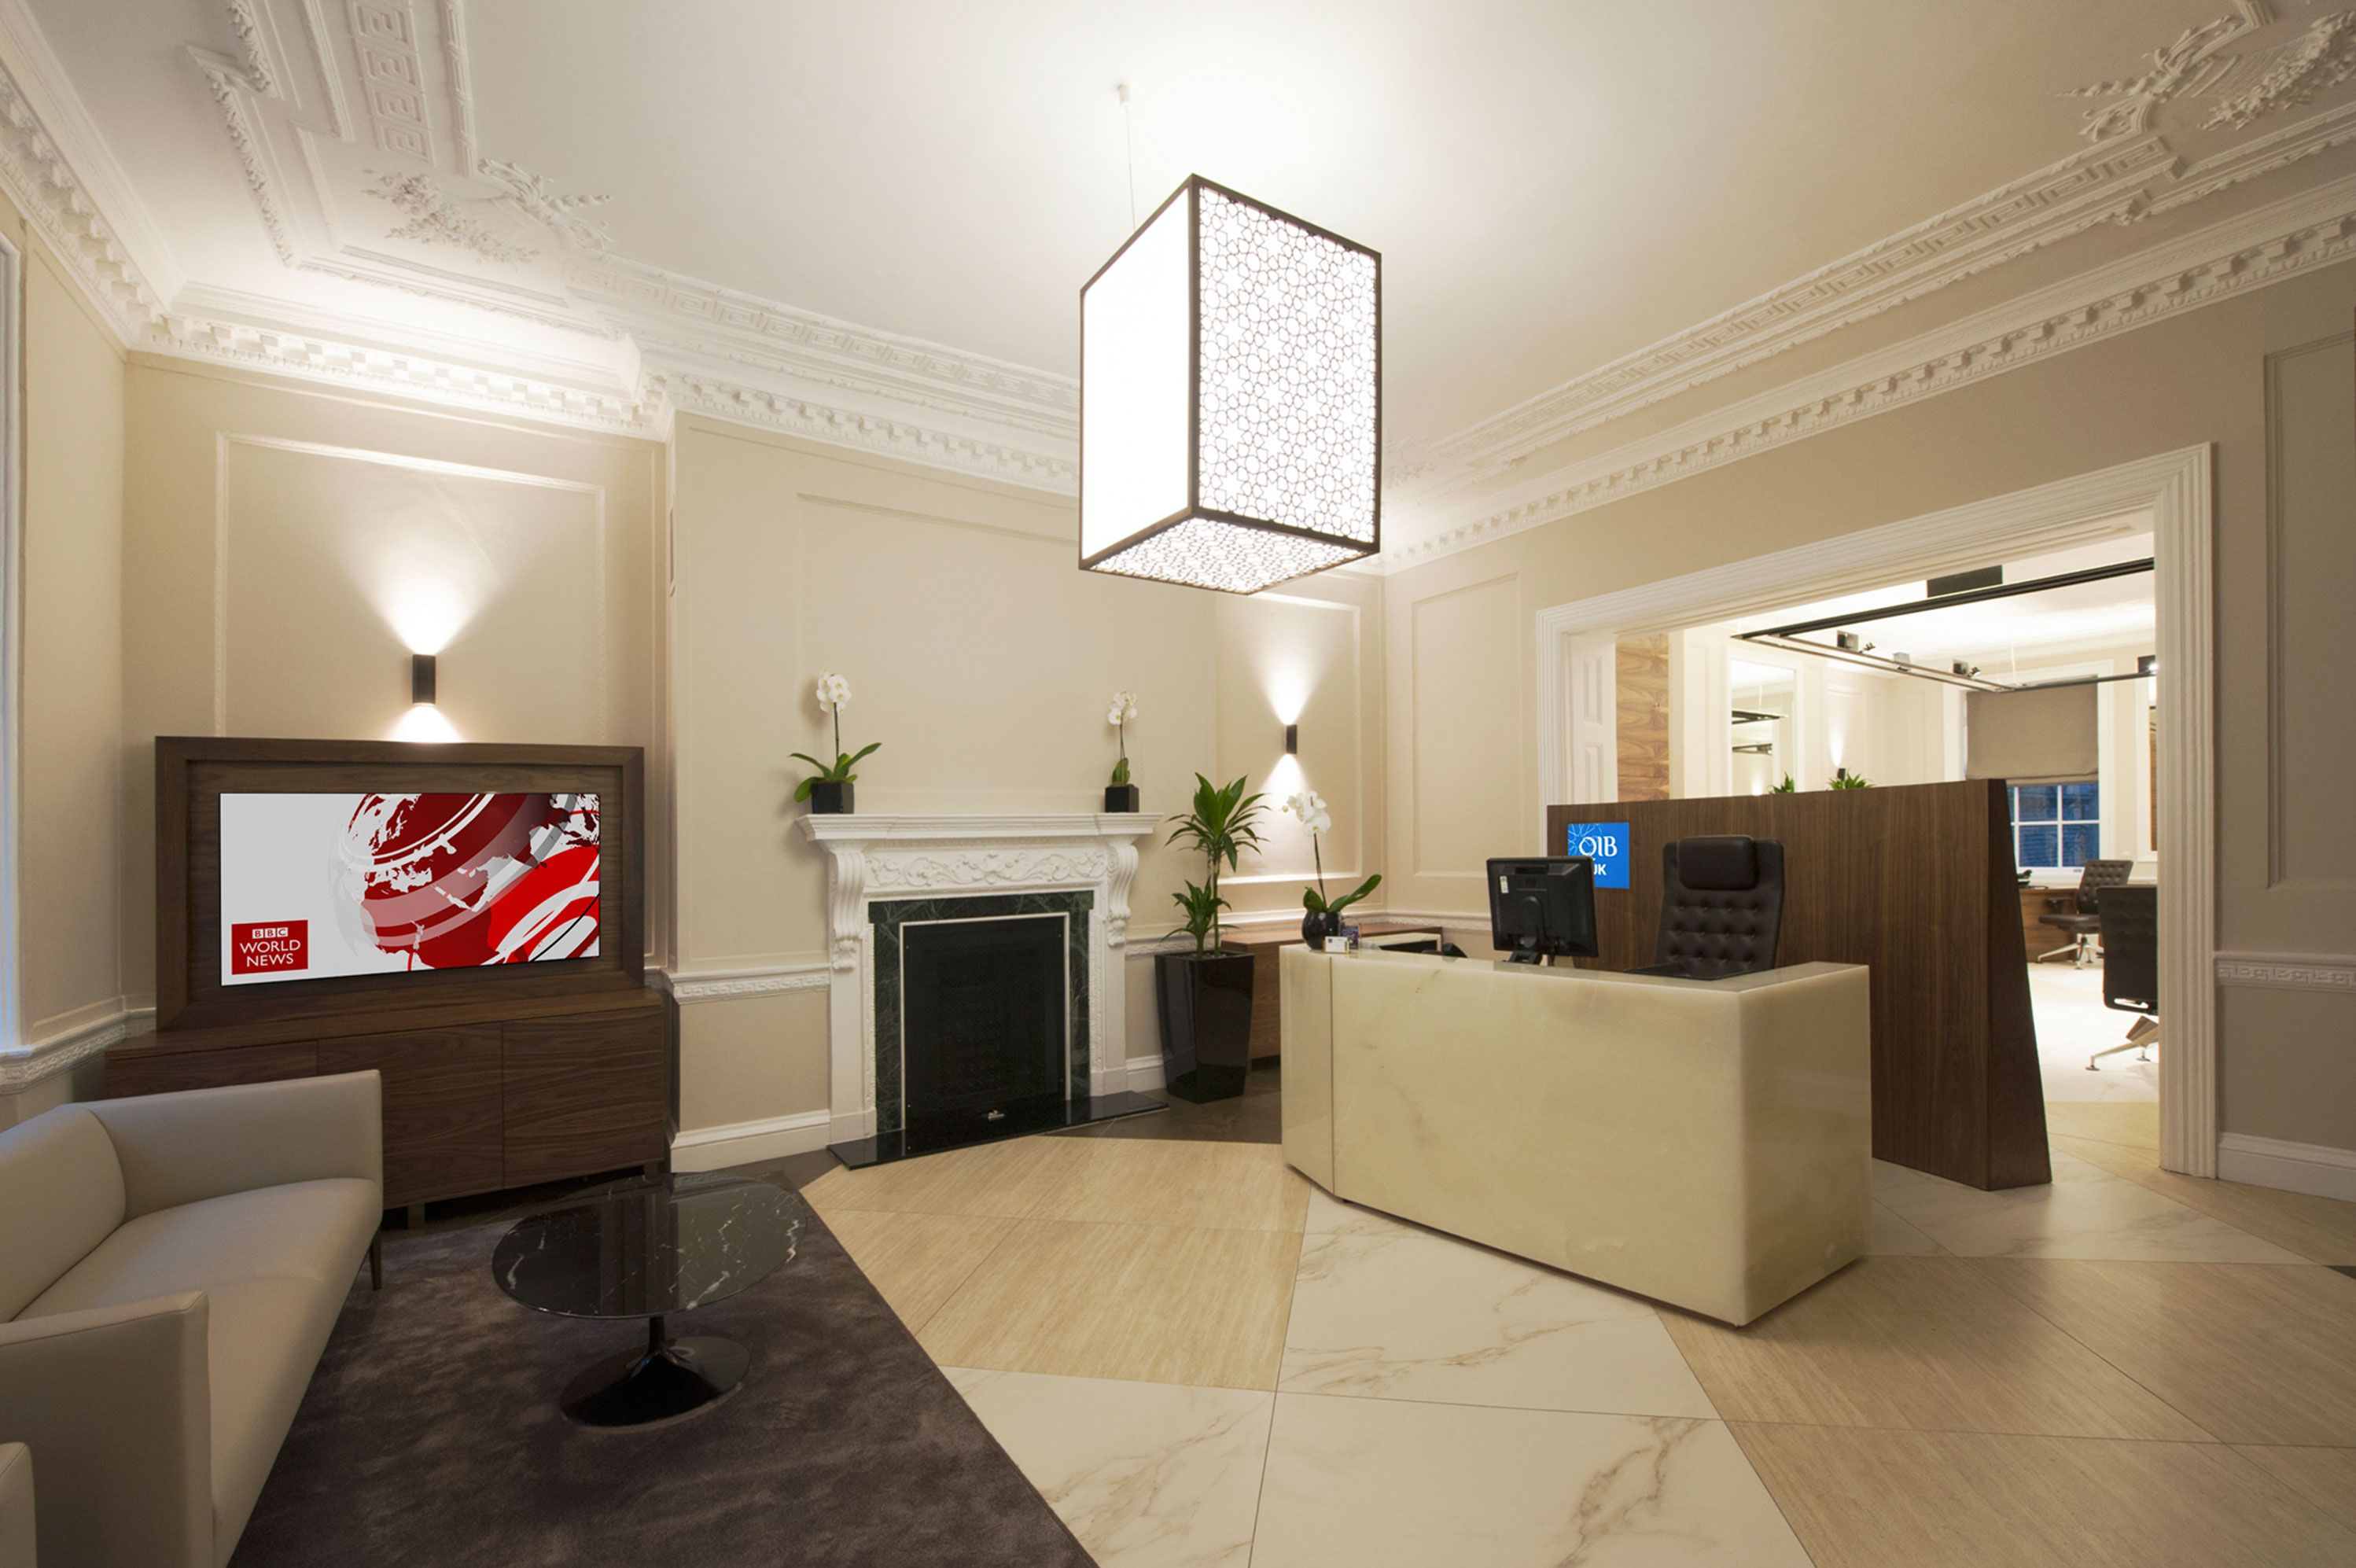 The Case Study Of Office Design And Fit Out New QIB At 43 Grosvenor Square In London Maris Interiors Designed Relocated Into